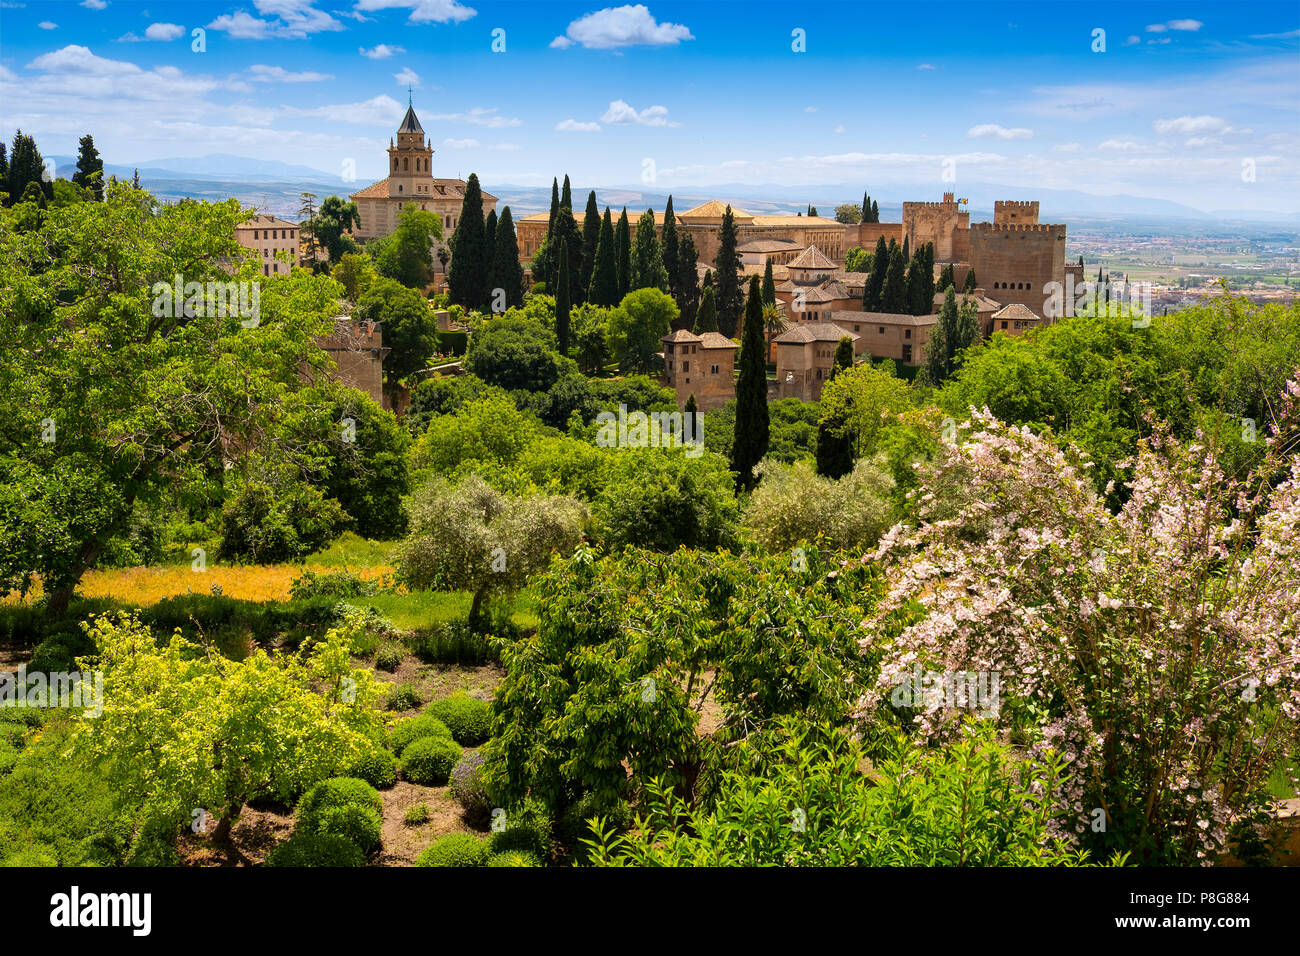 Gardens and panoramic view. Alhambra, UNESCO World Heritage Site. Granada City. Andalusia, Southern Spain Europe Stock Photo